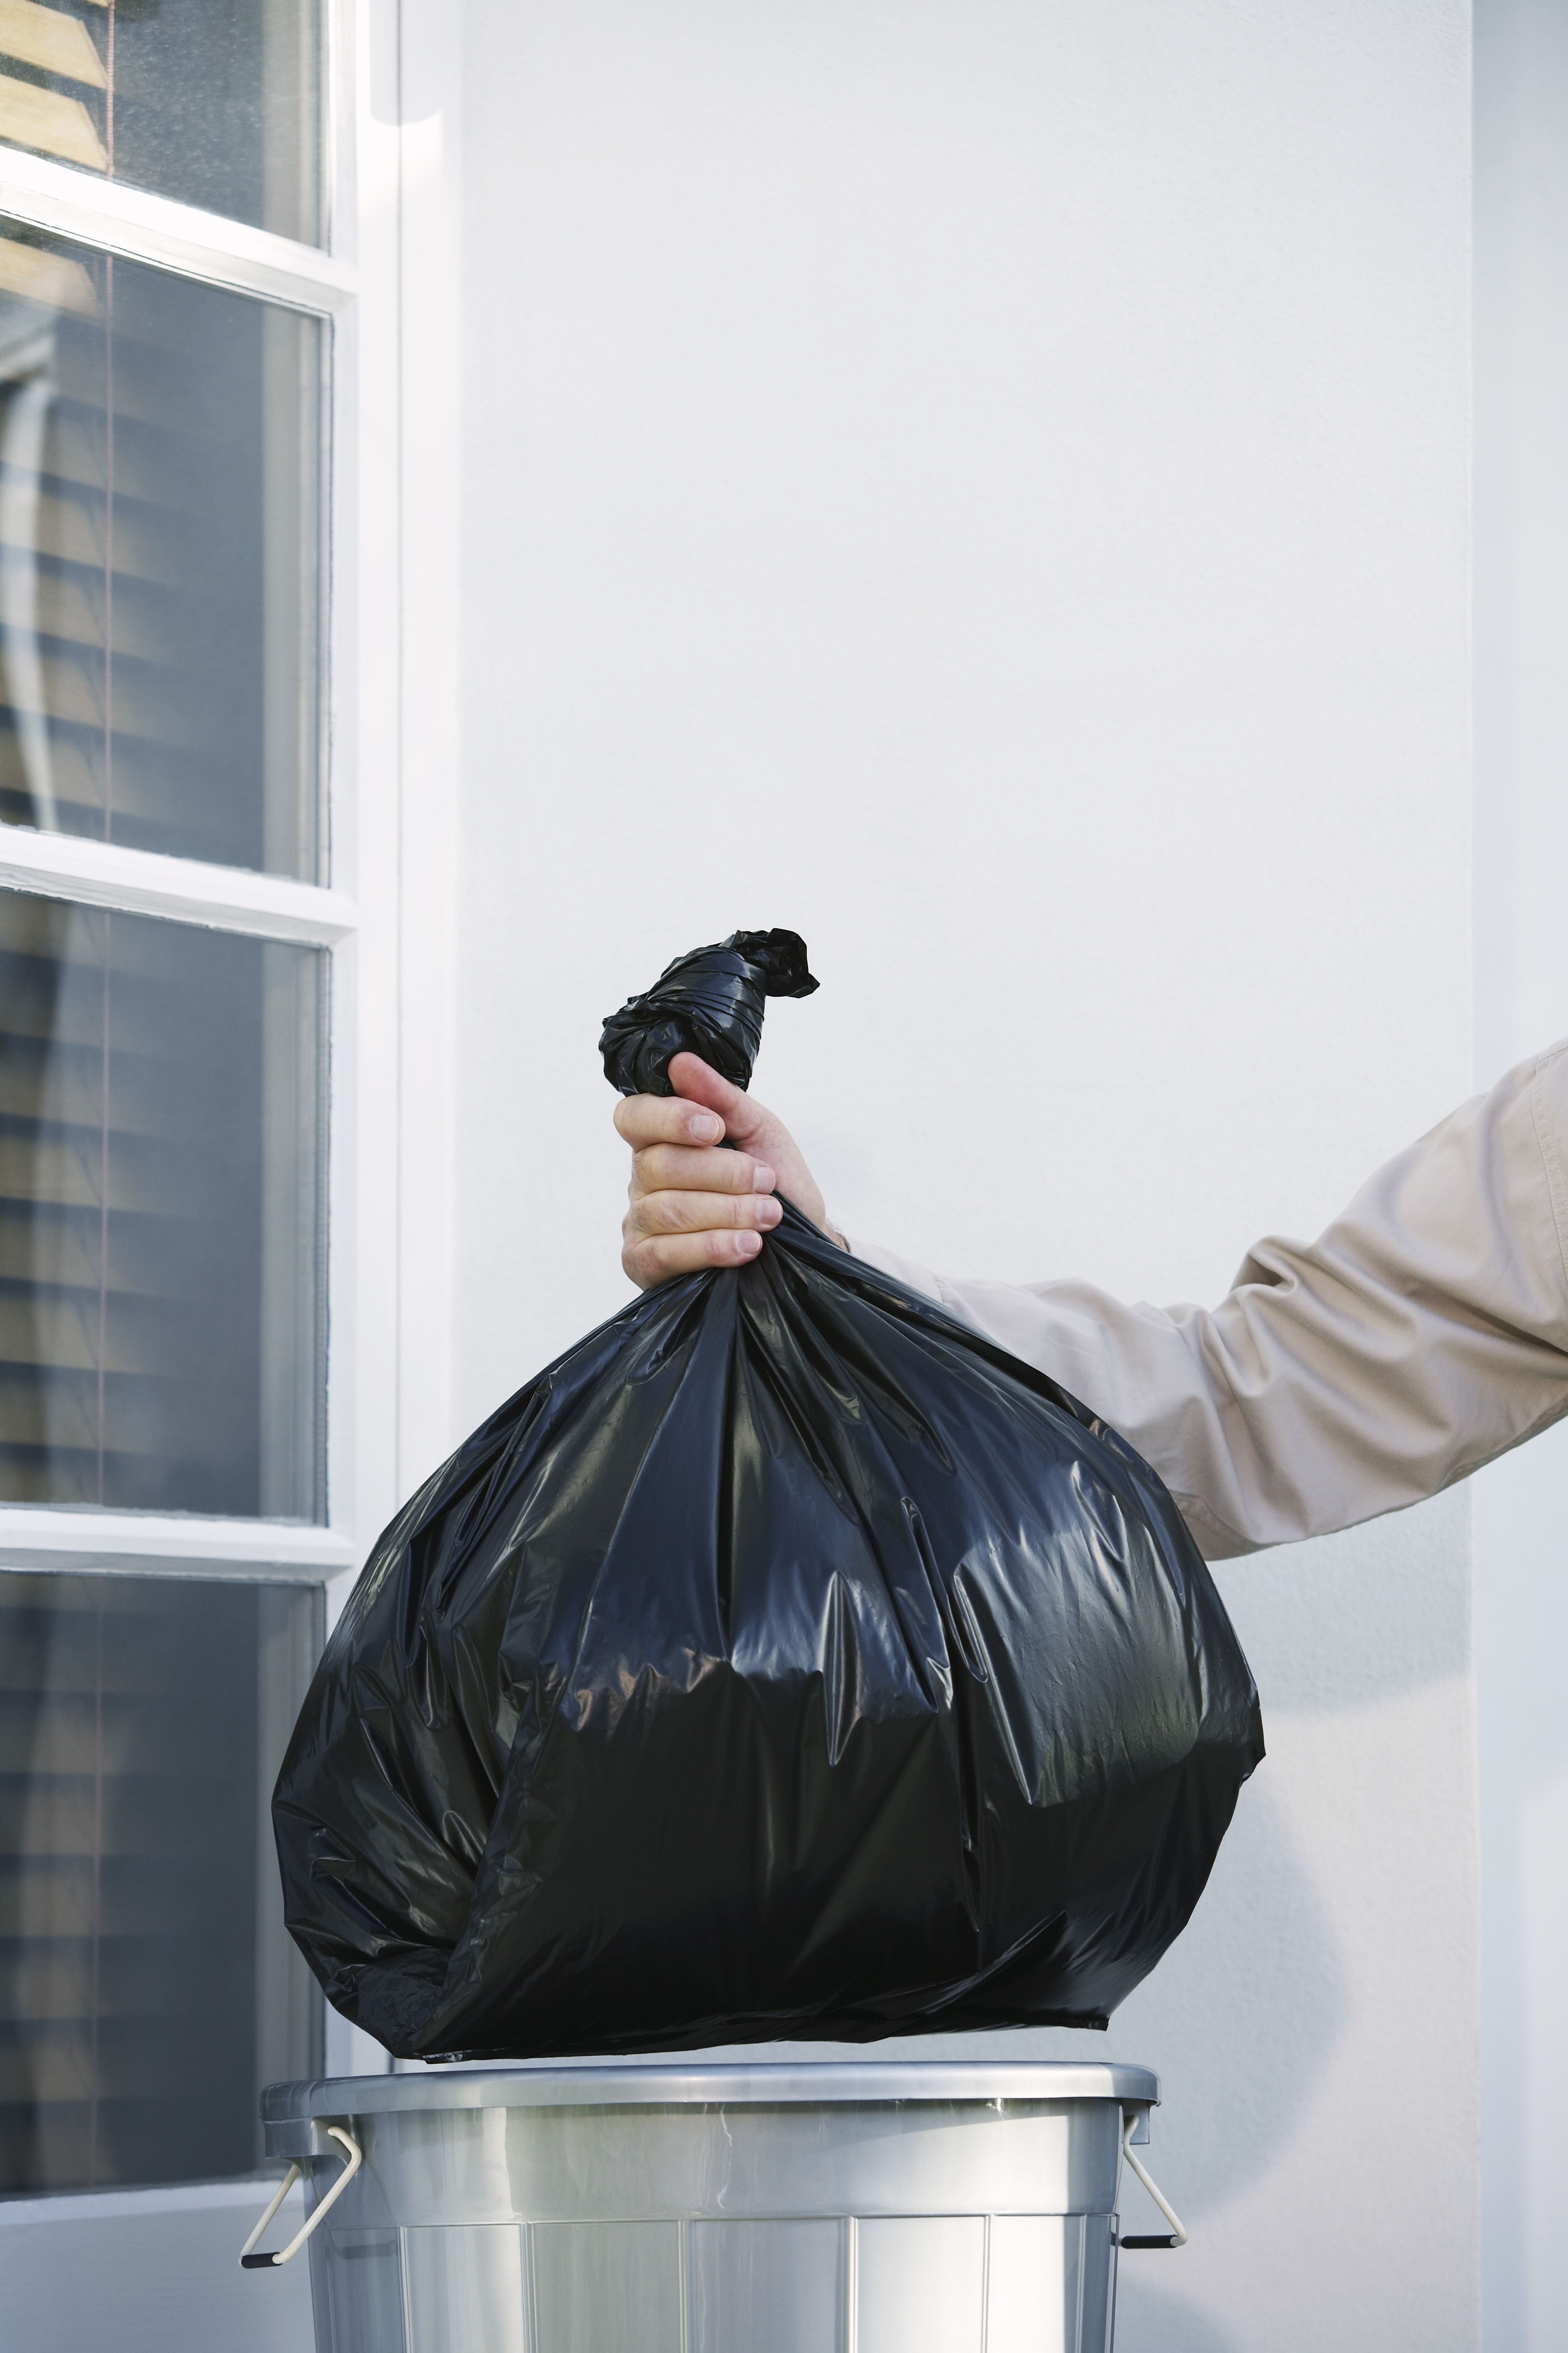 trash service is needed for a new homeowner